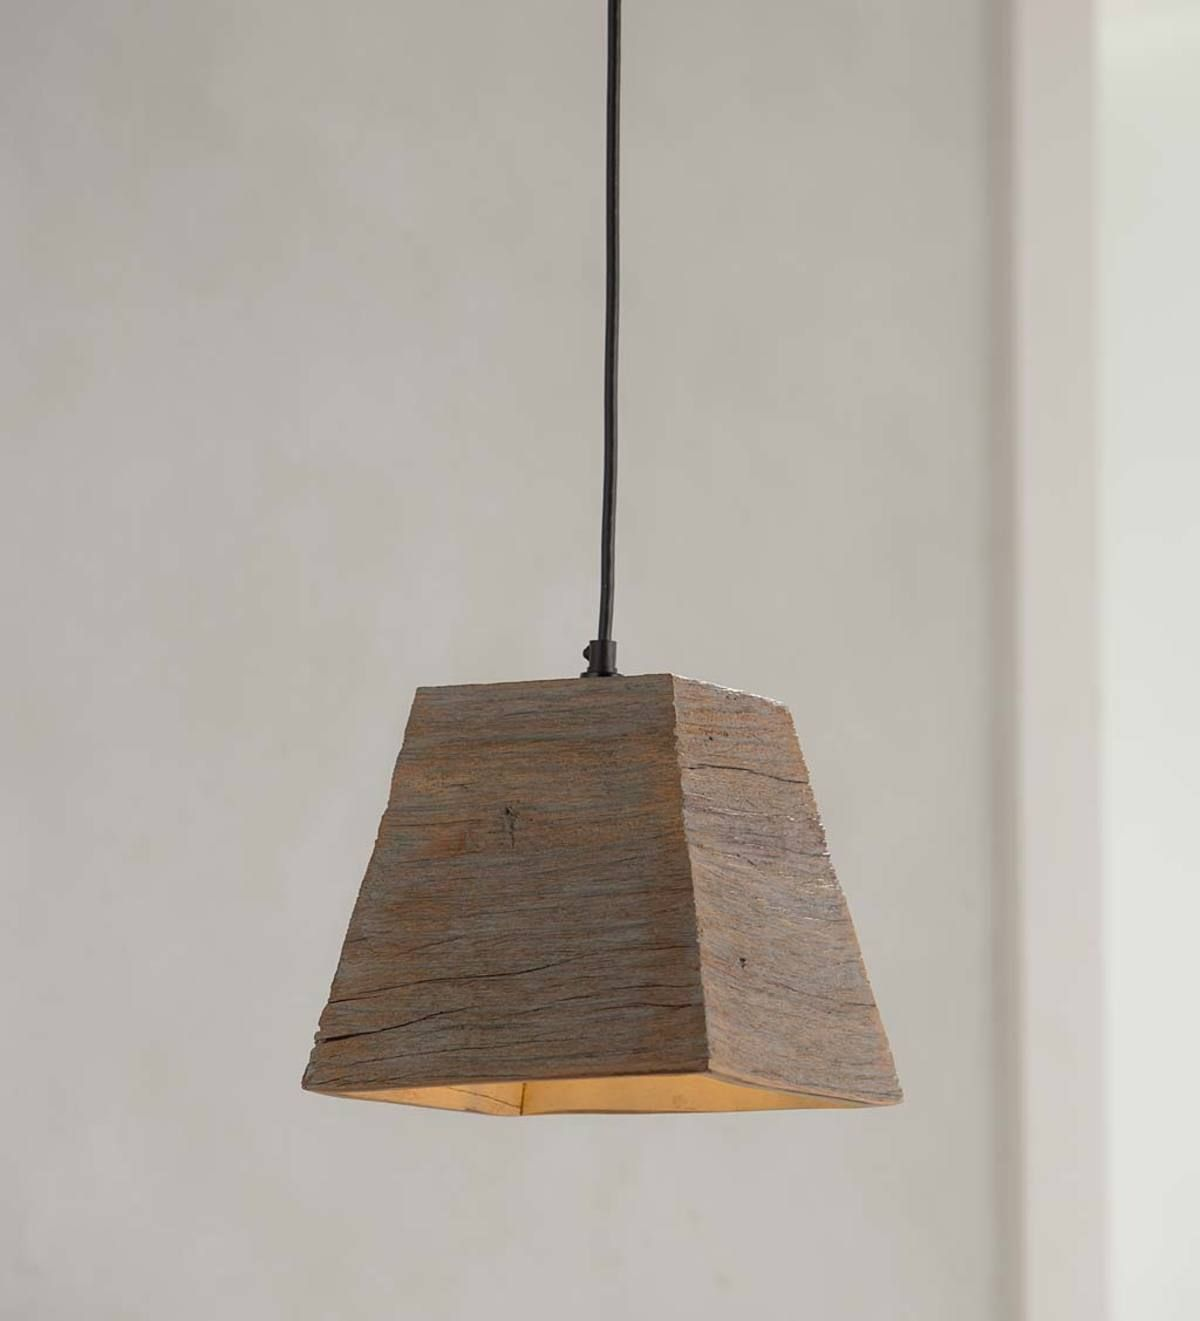 This Pendant Light Is Full Of Unique Character And Rustic Charm Handmade In India It Features Respon Wood Pendant Light Square Pendant Lighting Pendant Light